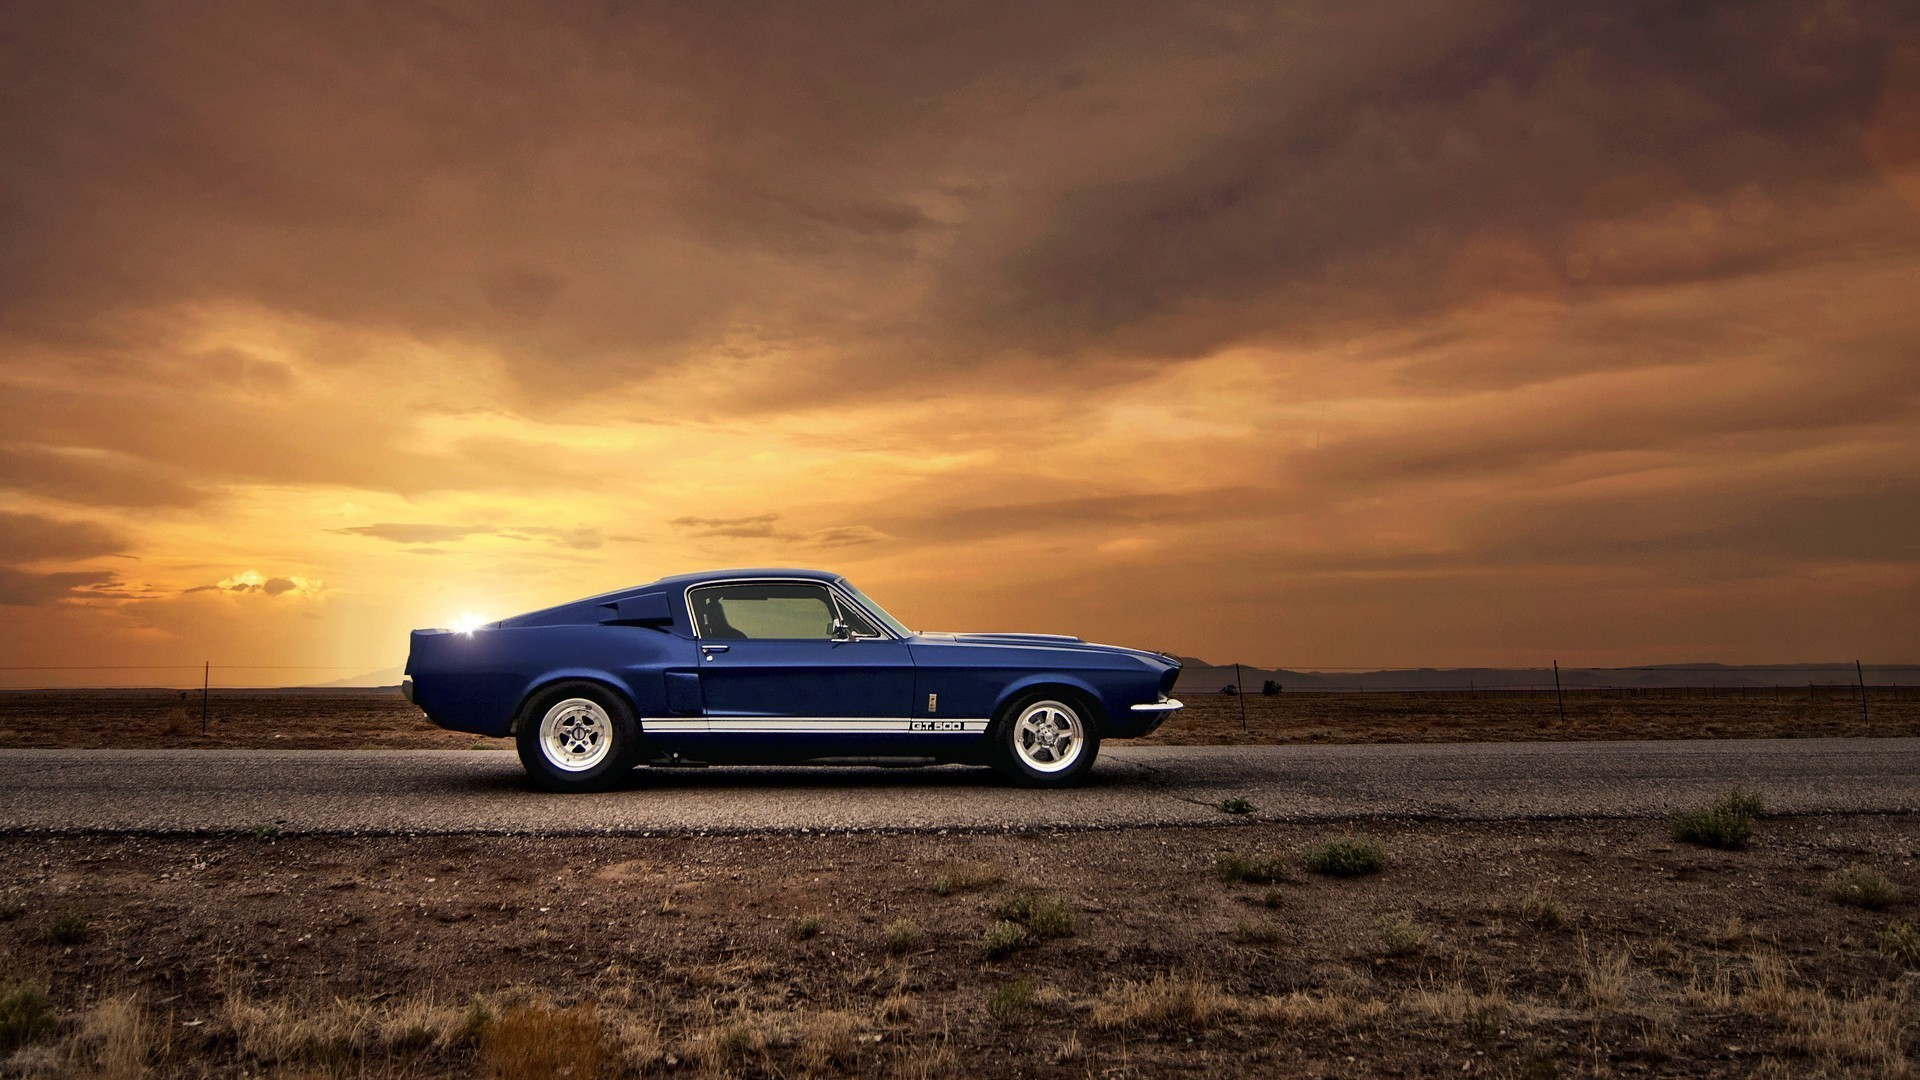 Cool Car Background Wallpapers ·①